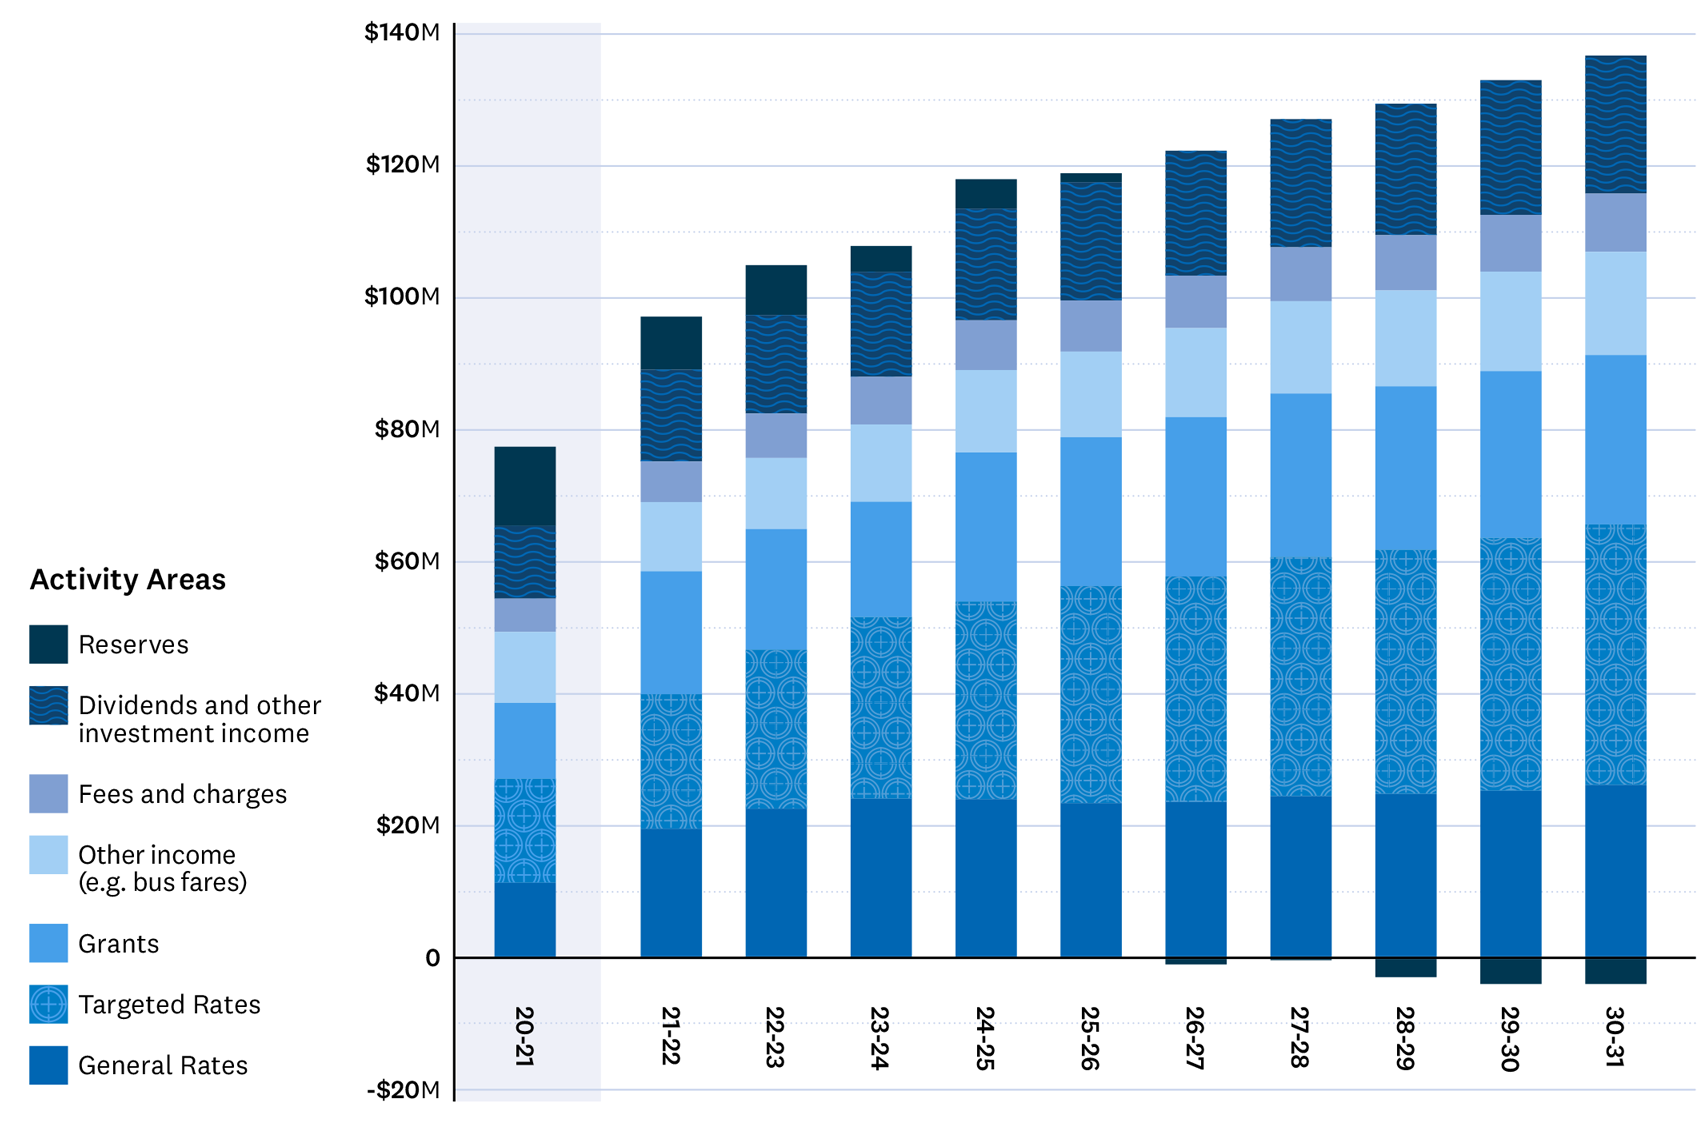 A stacked bar graph with a visual representation showing how we expect to cover costs over the next ten years with the current year (2020 to 2021) as comparison. Funds come from seven different sources: general rates, targeted rates, grants, other income, fees and charges, dividends and other investment income, and reserves.  The current year shows income from general rates $11,180,000, targeted rates $15,777,000, grants $11,474,000, other income $10,770,000, fees and charges $5,050,000, reserves $12,012,000 and income from dividends and investments $11,015,000.  Year 1 shows income from general rates $19,365,000, targeted rates $20,398,000, grants $18,637,000, other income $10,488,000, fees and charges $6,158,000, reserves $8,025,000, and income from dividends and investments $13,928,000. Year 2 shows income from general rates $22,407,000, targeted rates $24,112,000, grants $18,288,000, other income $10,767,000, fess and charges $6,741,000, reserves $7,569,000, and income from dividends and investments $14,928,000. Year 3 shows income from general rates $23,920,000, targeted rates $27,539,000, grants $17,490,000, other income $11,707,000, fees and charges $7,216,000, reserves $3,908,000, and income from dividends and investments $15,928,000. Year 4 shows income from general rates $23,847,000, targeted rates $29,965,000, grants $22,587,000, other income $12,501,000, fees and charges $7,548,000, reserves $4,453,000, and income from dividends and investments $16,928,000. Year 5 shows income from general rates $23,248,000, targeted rates $32,908,000, grants $22,558,000, other income $12,985,000, fees and charges $7,754,000, reserves $1,362,000, and income from dividends and investments $17,928,000. Year 6 shows income from general rates $23,415,000, targeted rates $34,191,000, grants $24,165,000, other income $13,482,000, fees and charges $7,961,000, reserves negative $782,000, and income from dividends and investments $18,928,000. Year 7 shows income from general rate